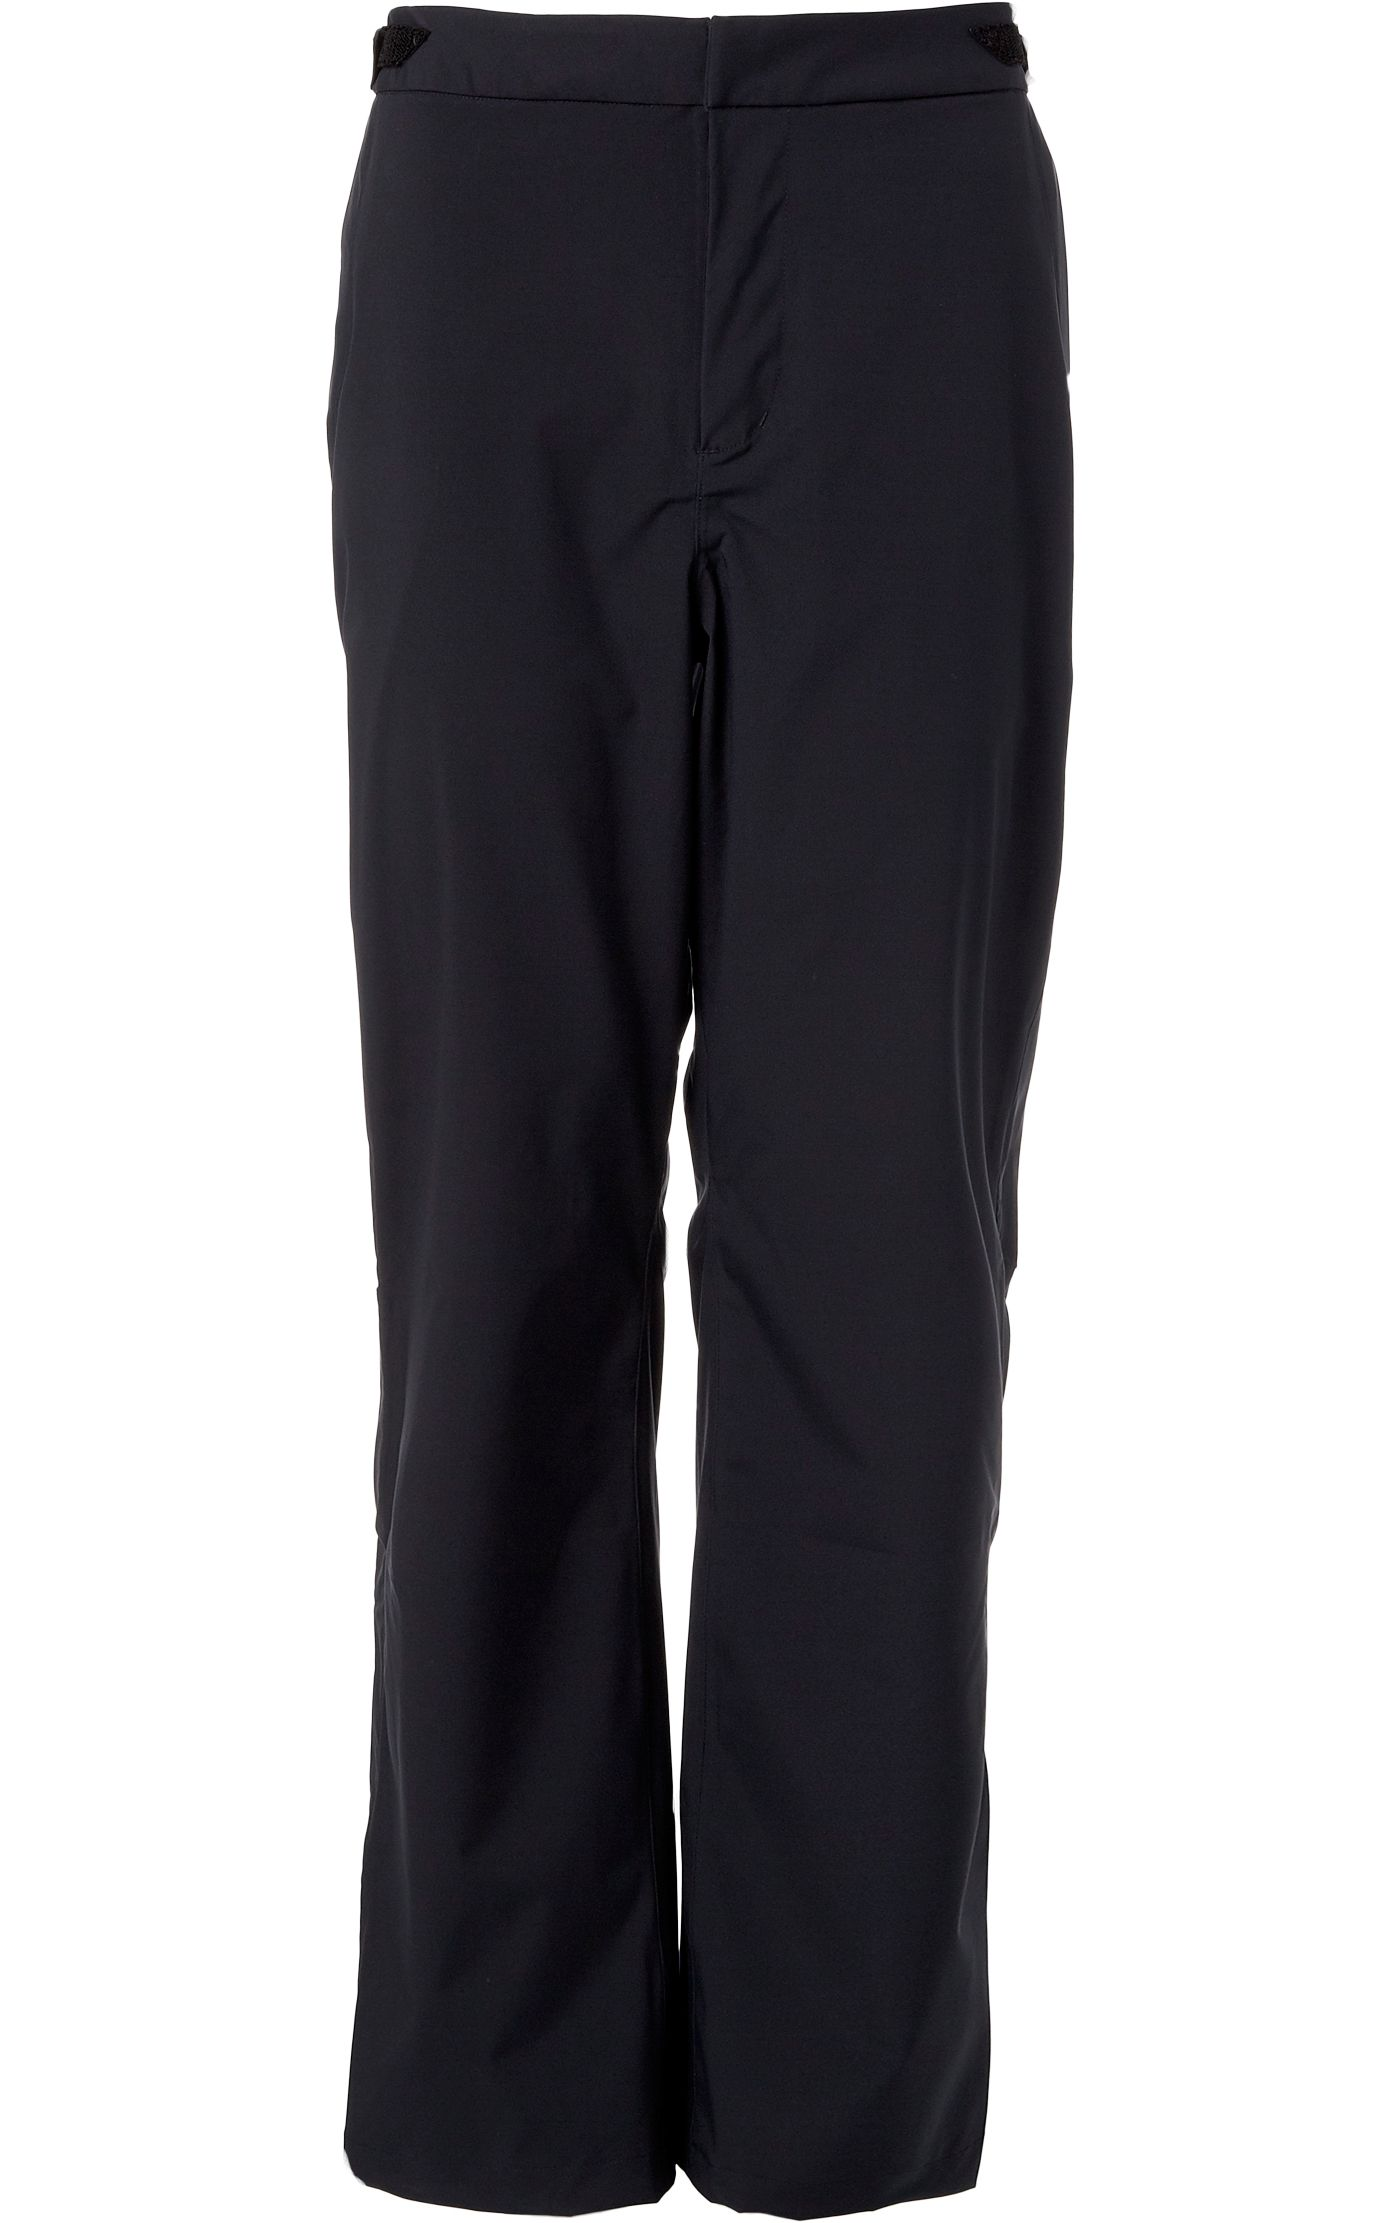 Under Armour Men's Golf Rain Pants